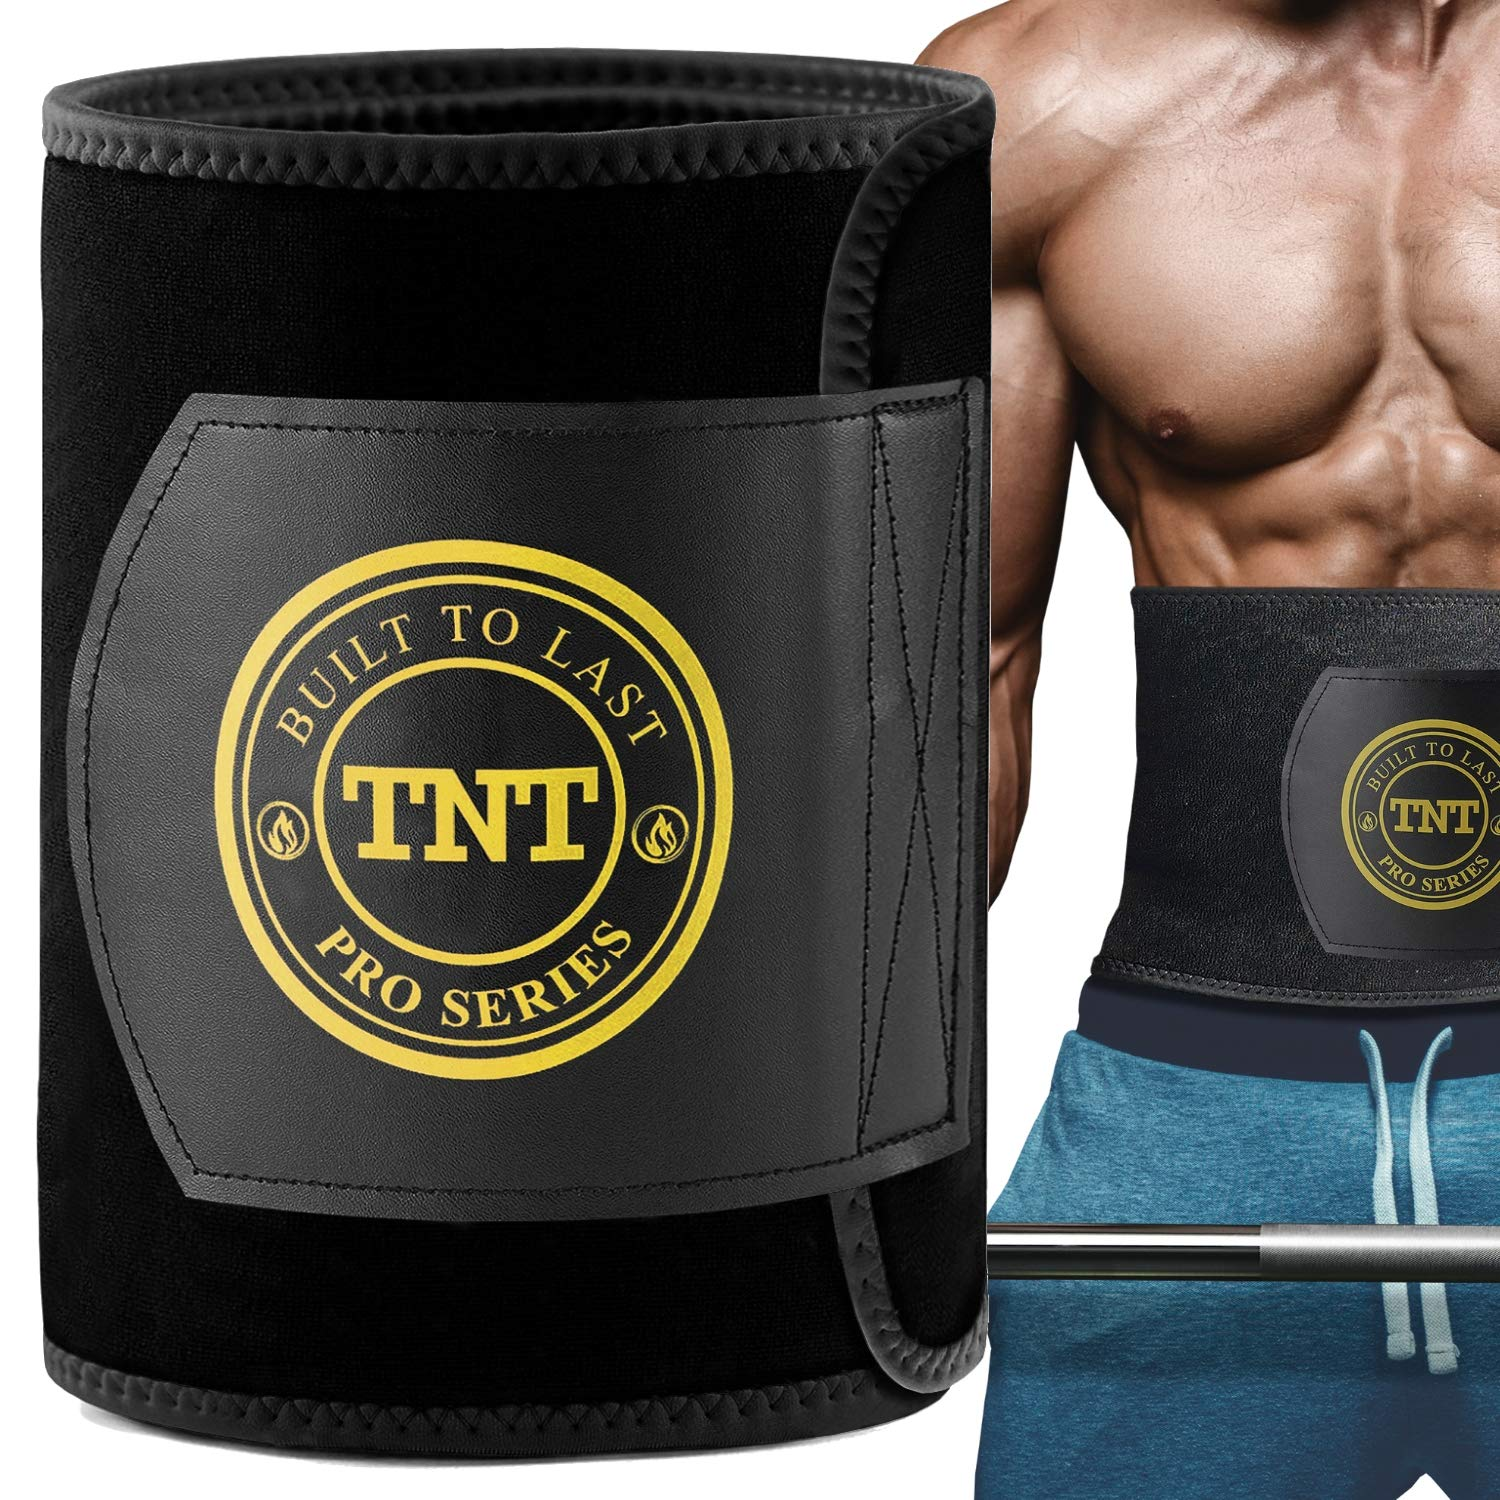 TNT Pro Series Waist Trimmer Weight Loss Ab Belt - Premium Stomach Fat Burner Wrap and Waist Trainer (X-Large, Yellow)